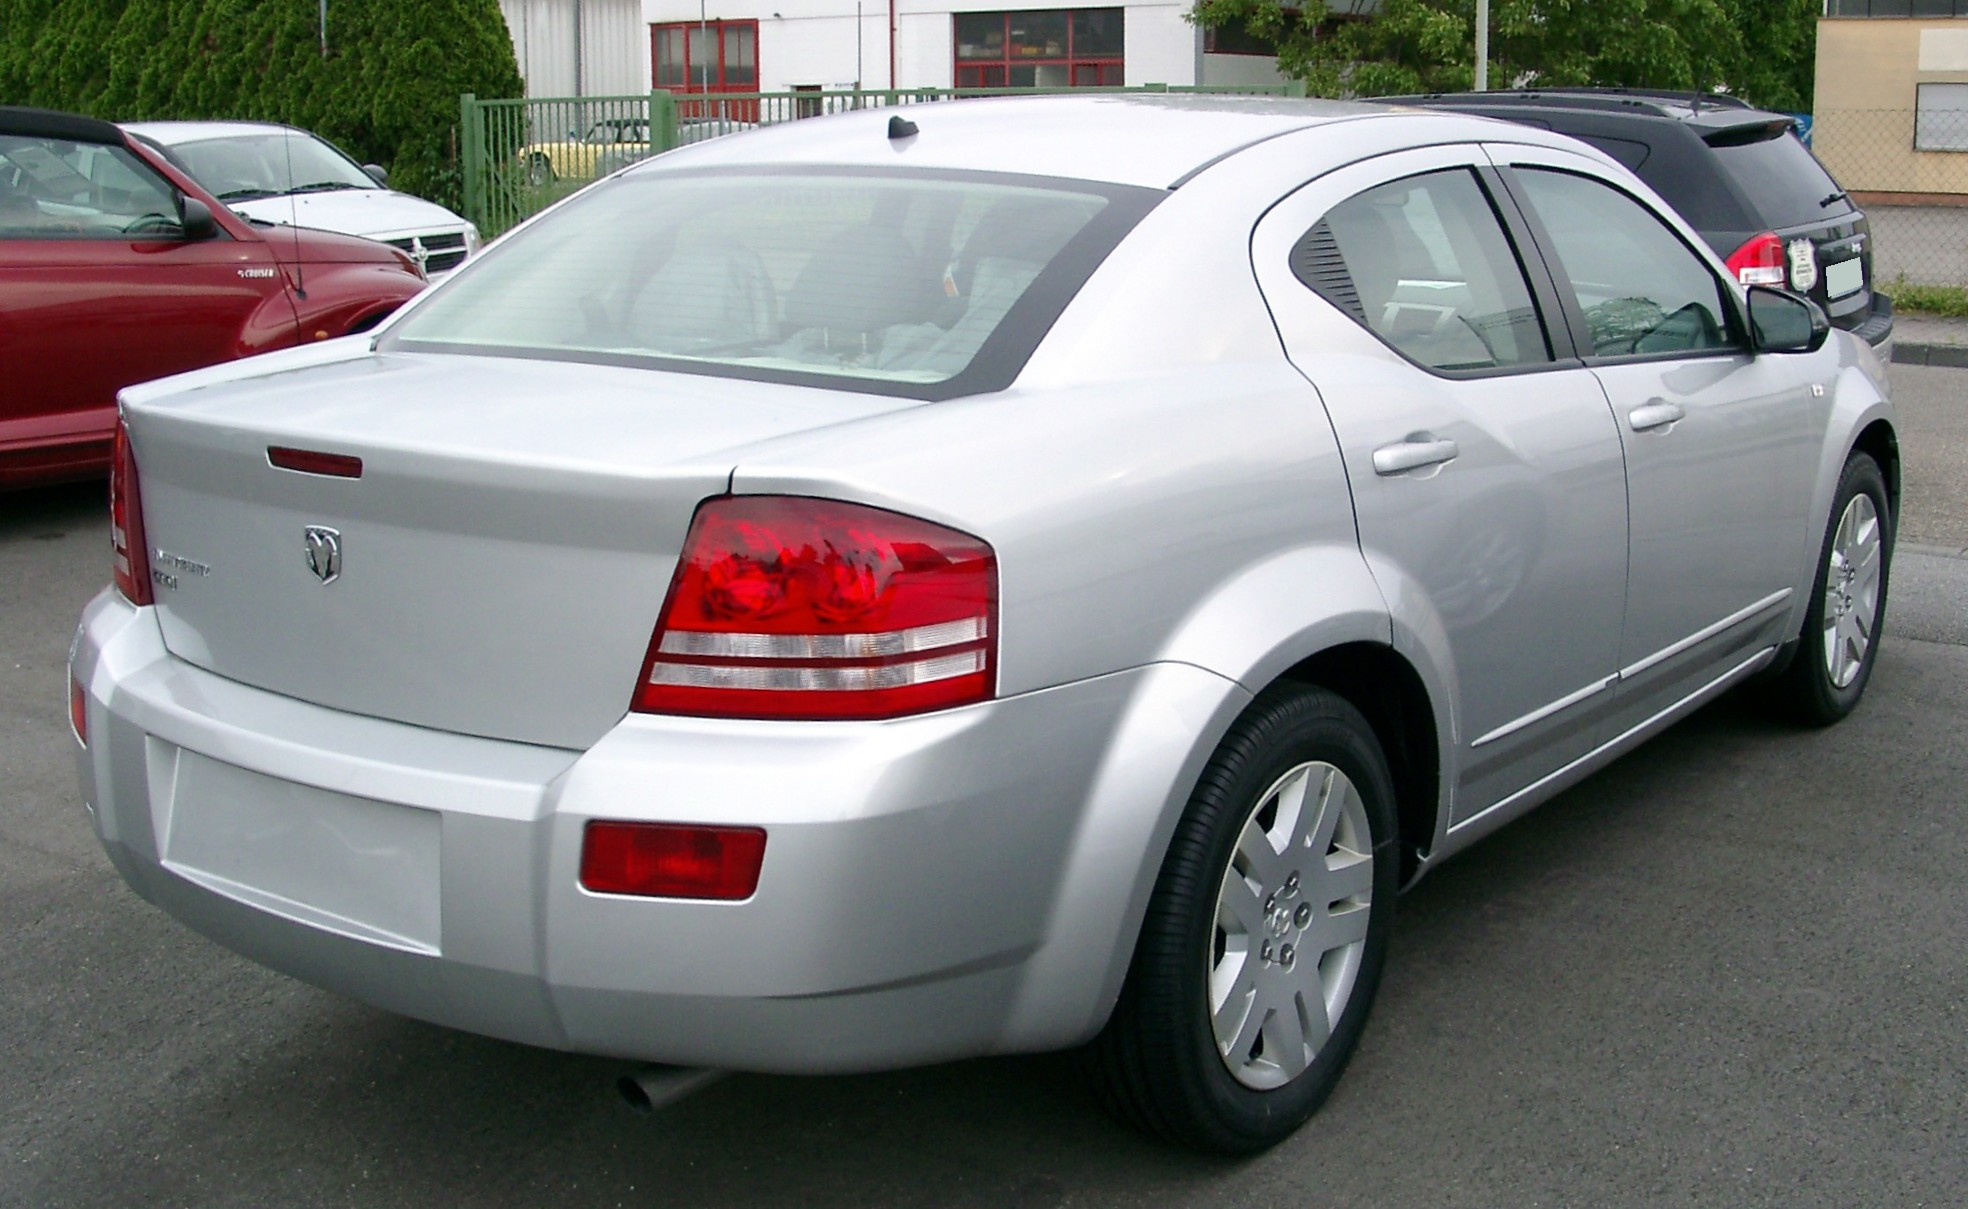 file:dodge avenger rear 20080517 - wikimedia commons